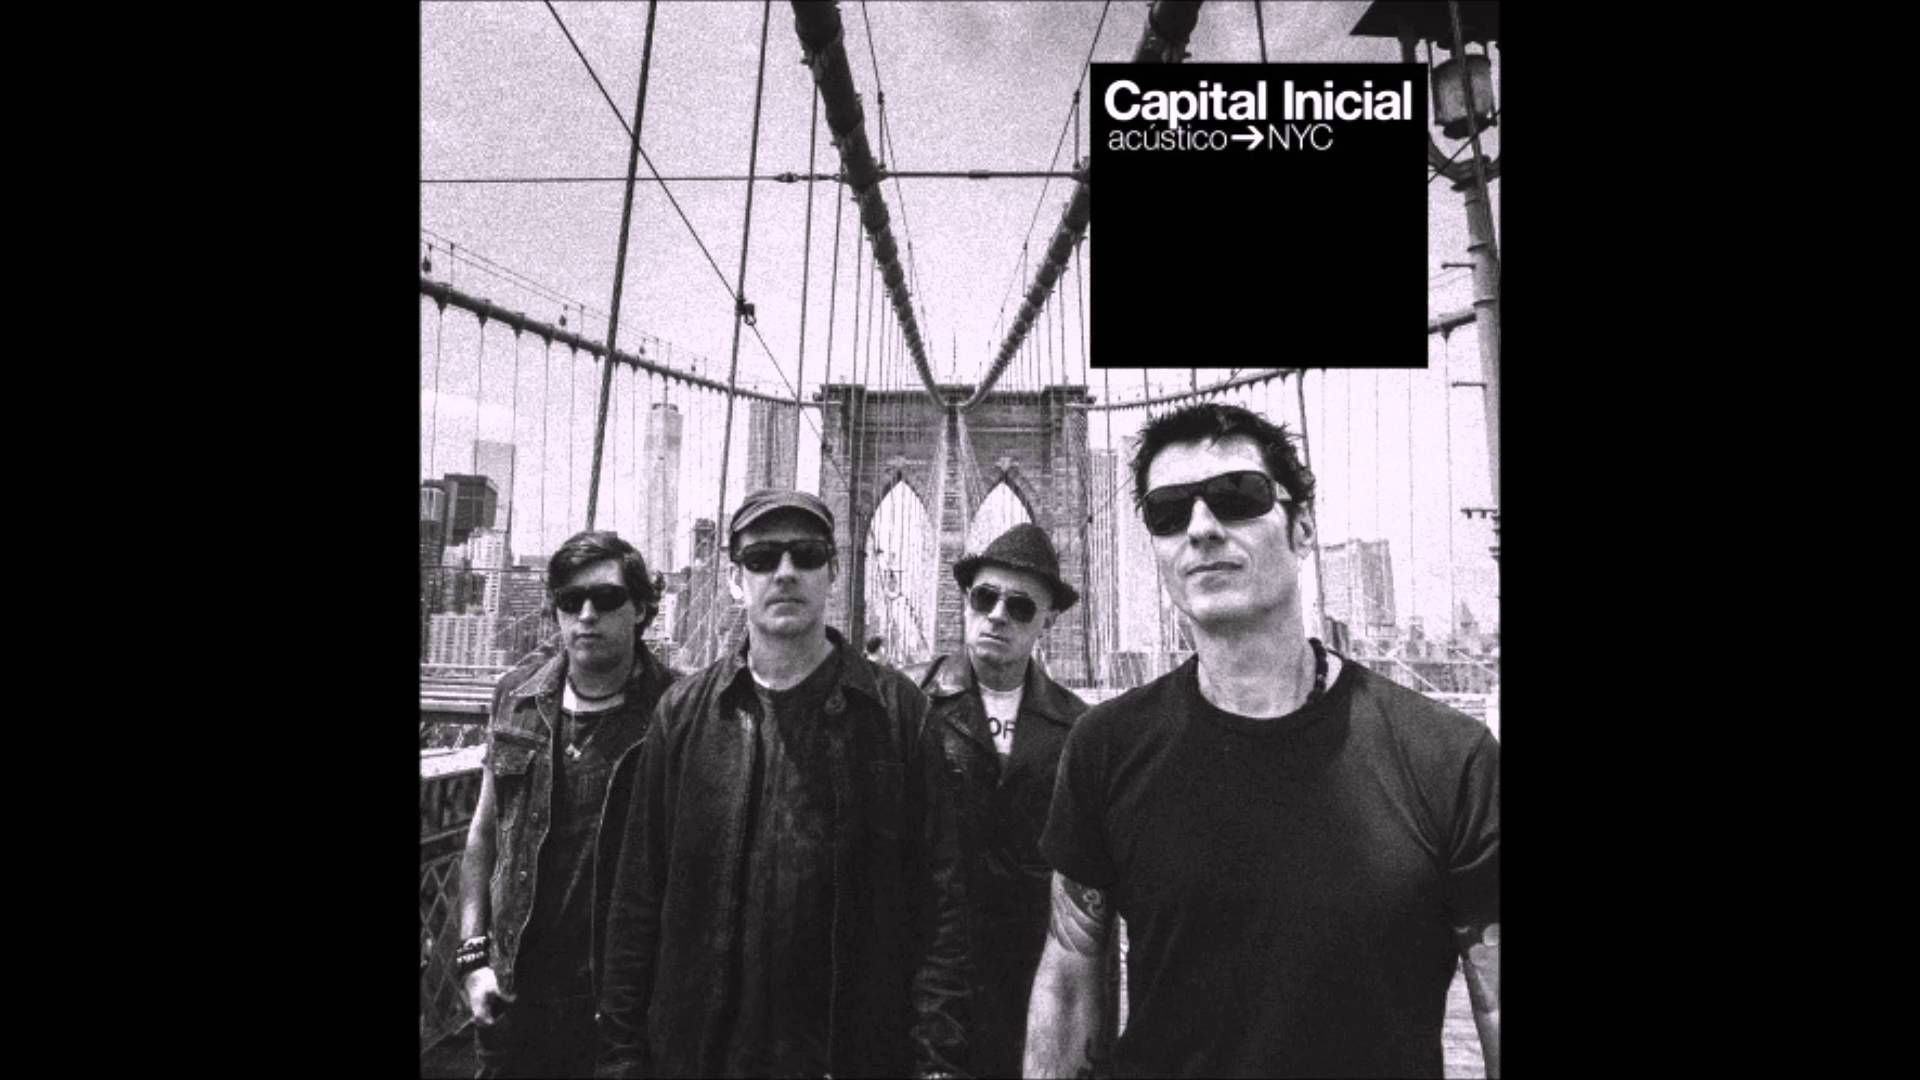 best ideas about capital inicial acustico 17 best ideas about capital inicial acustico musicas nacionais pop rock nacional and videos legiao urbana